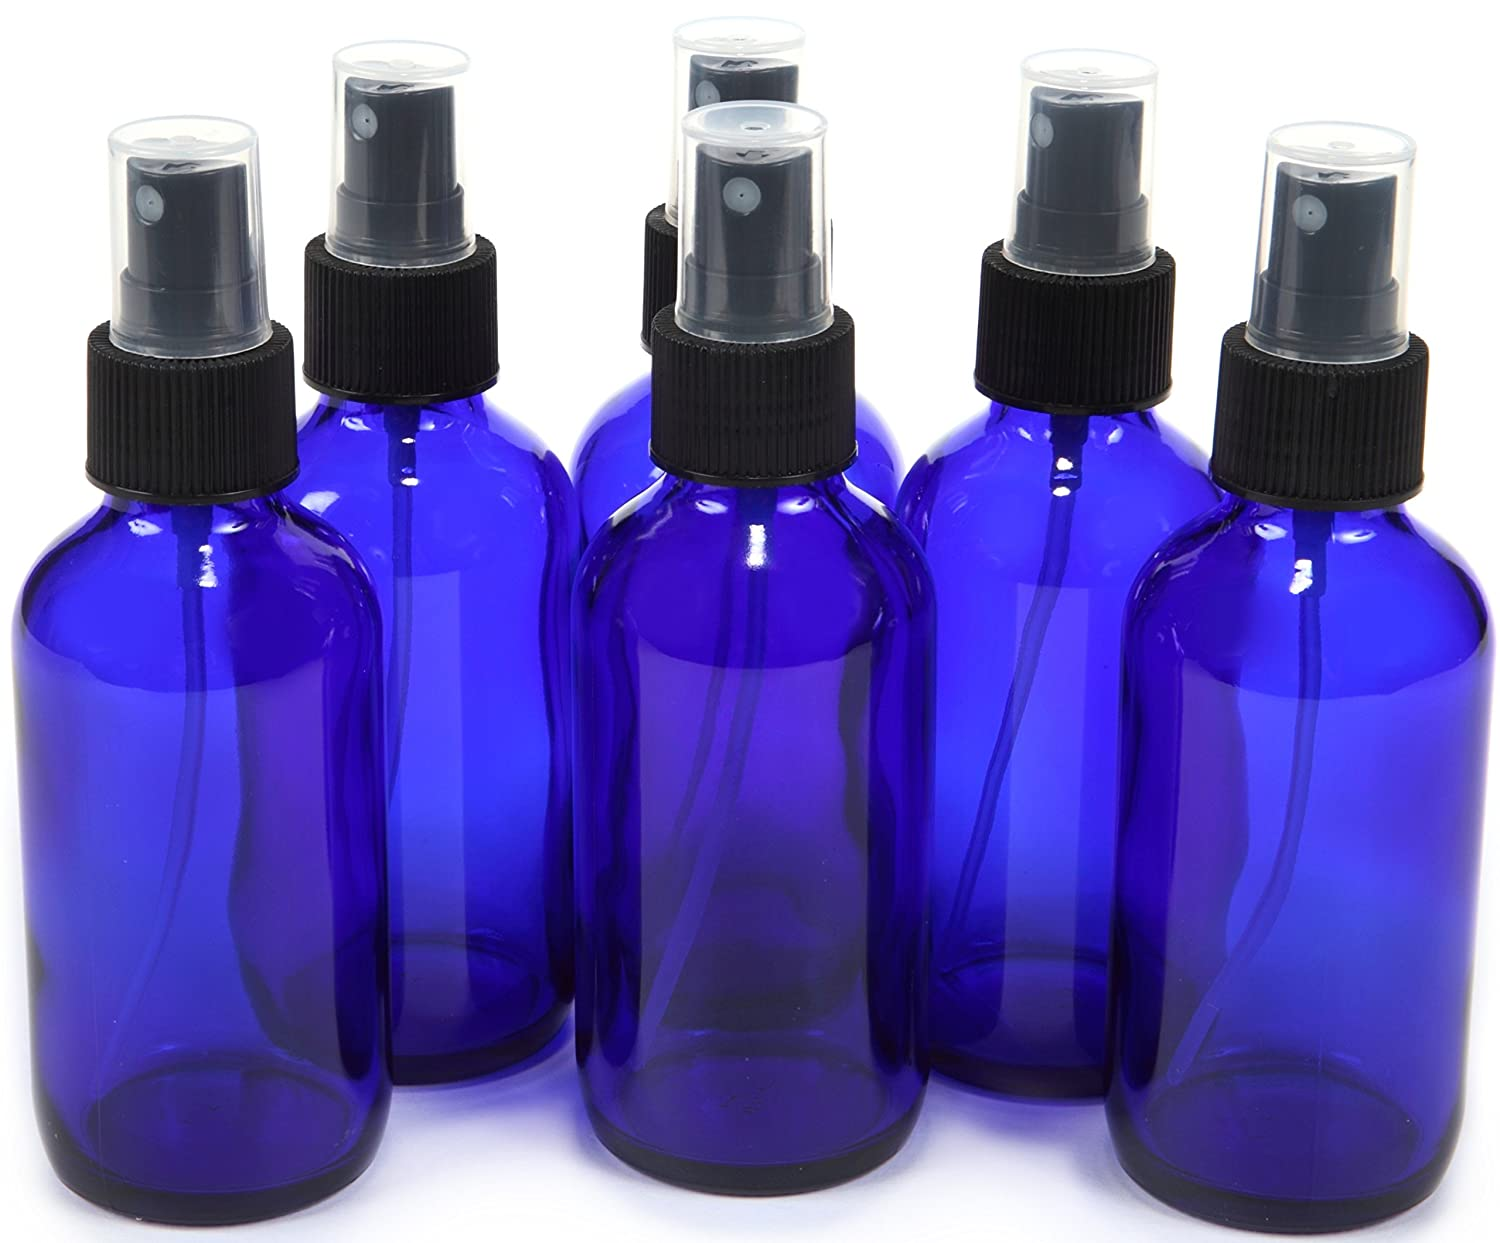 6 New, High Quality, 4 oz Cobalt Blue Glass Bottles, with Black Fine Mist Sprayer by Vivaplex PSC Products VCM4-6